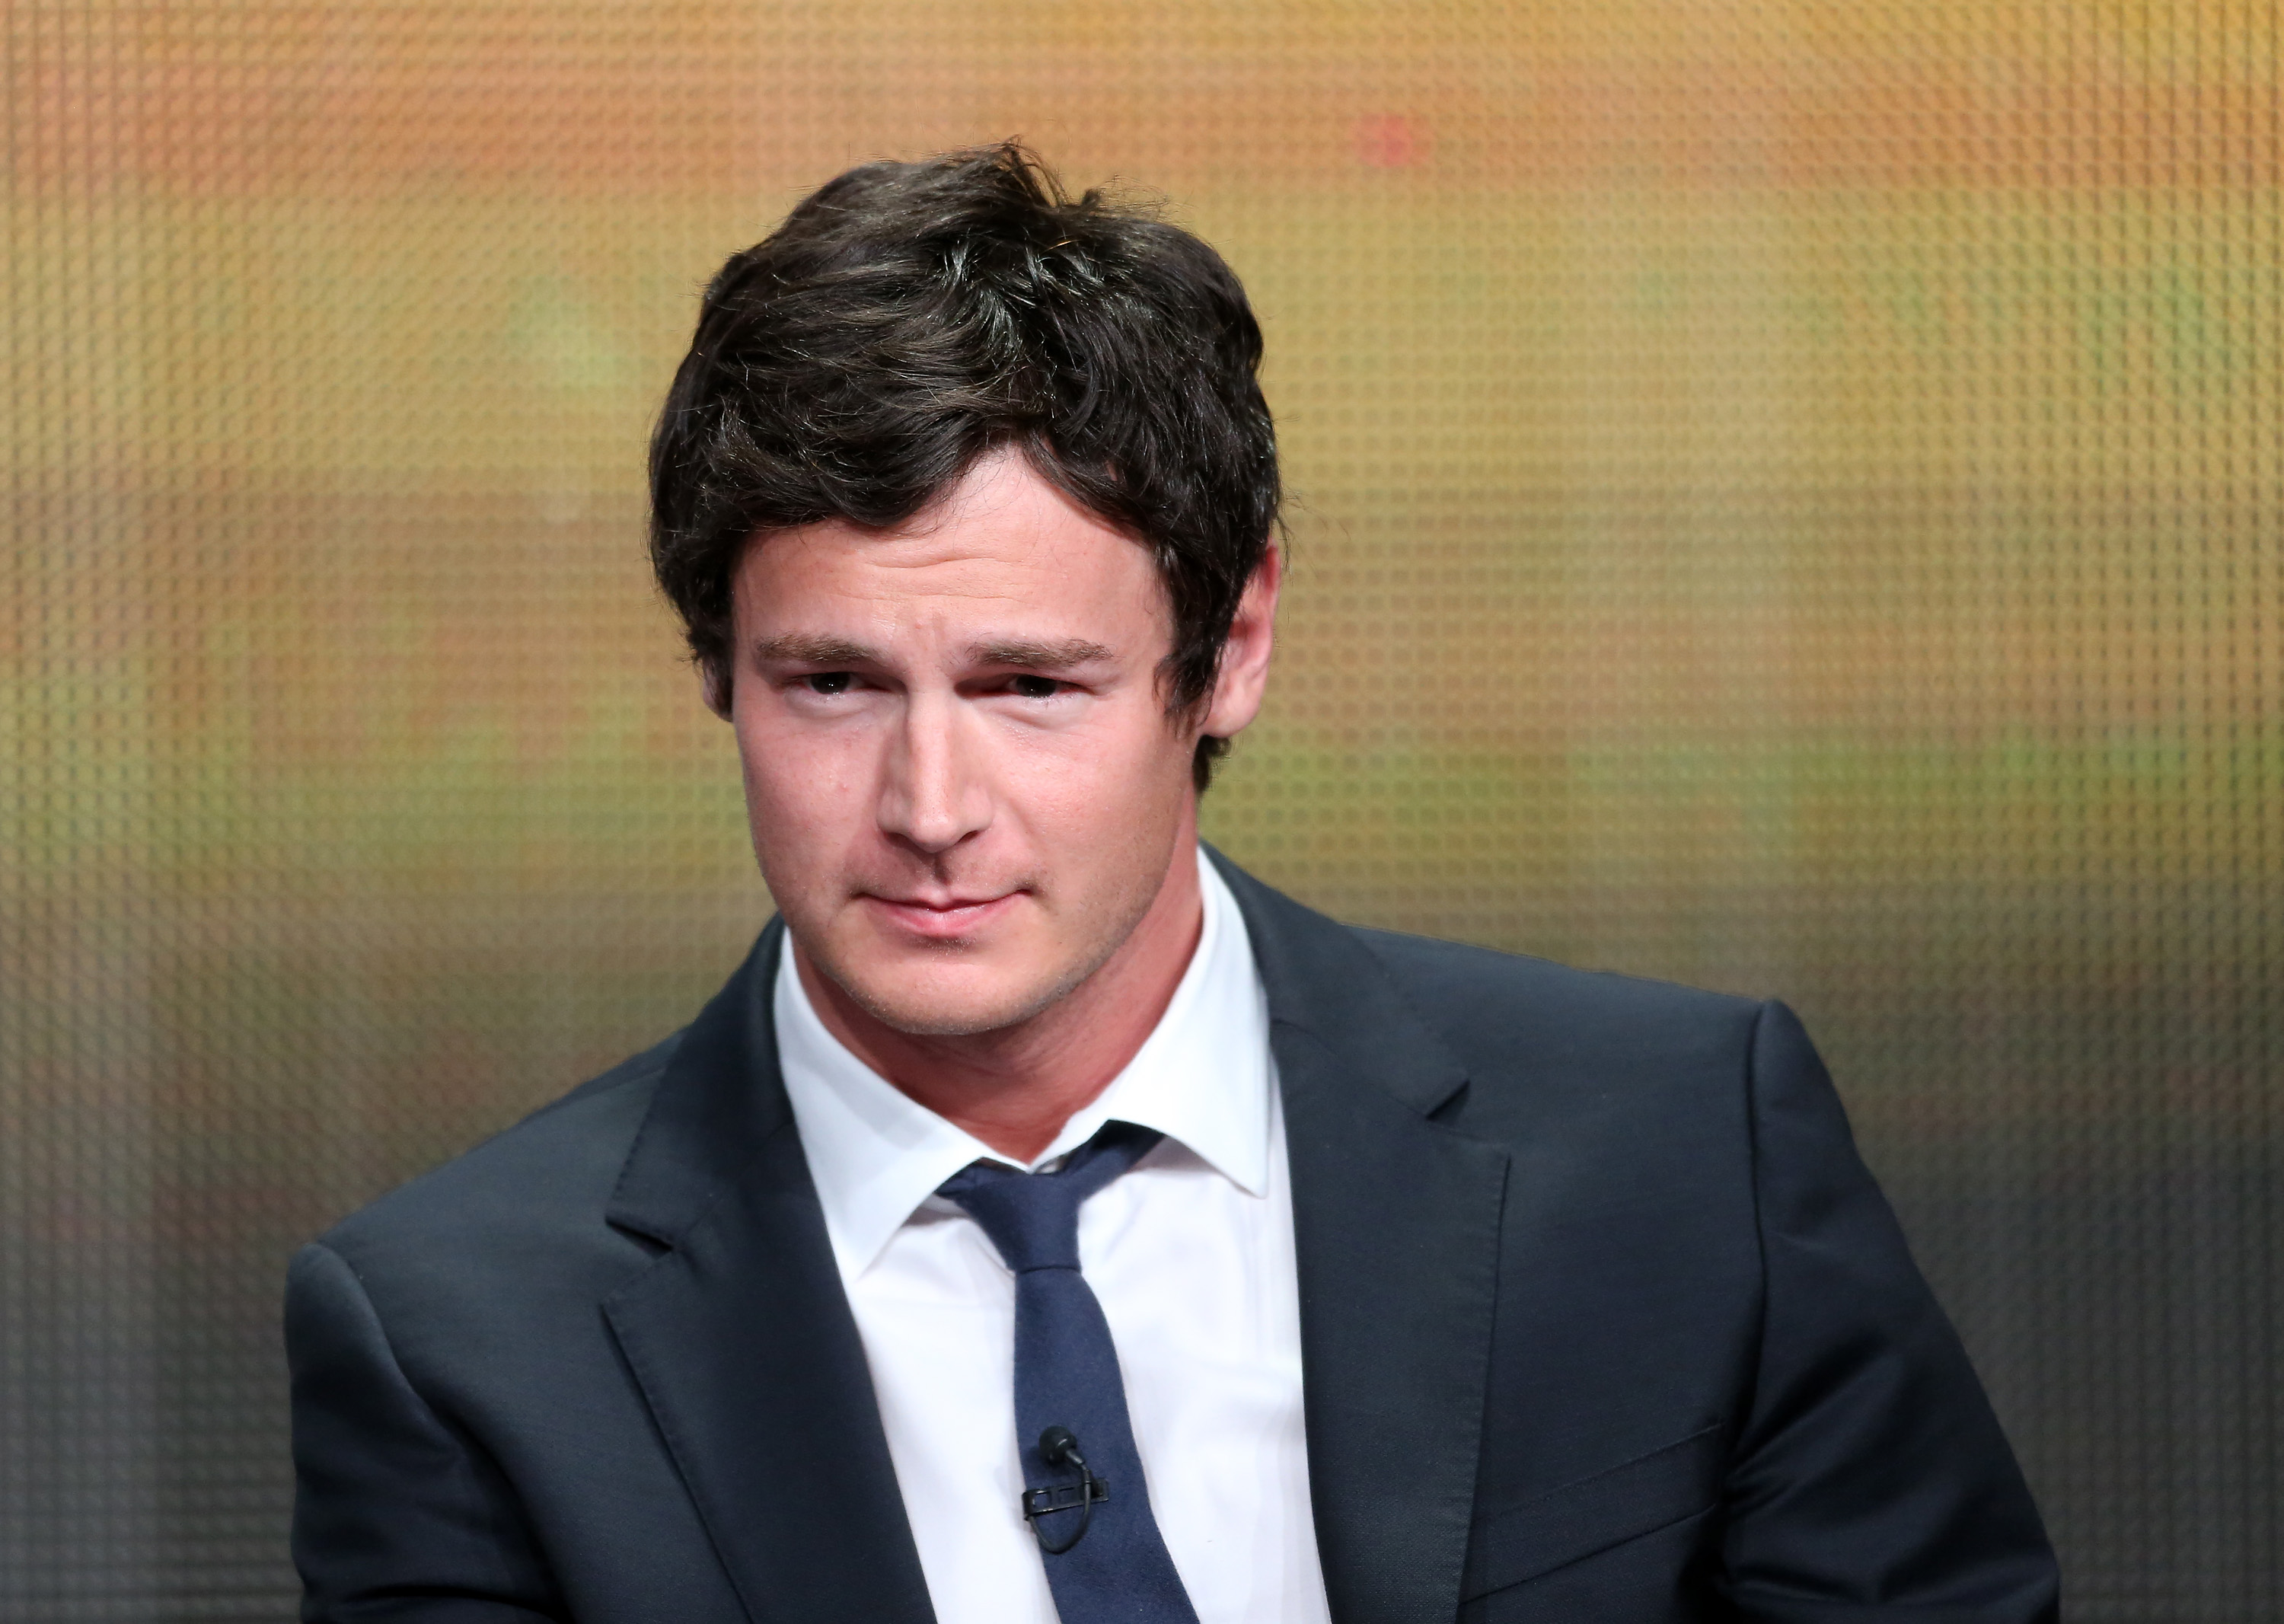 Benjamin Walker Body Measurements